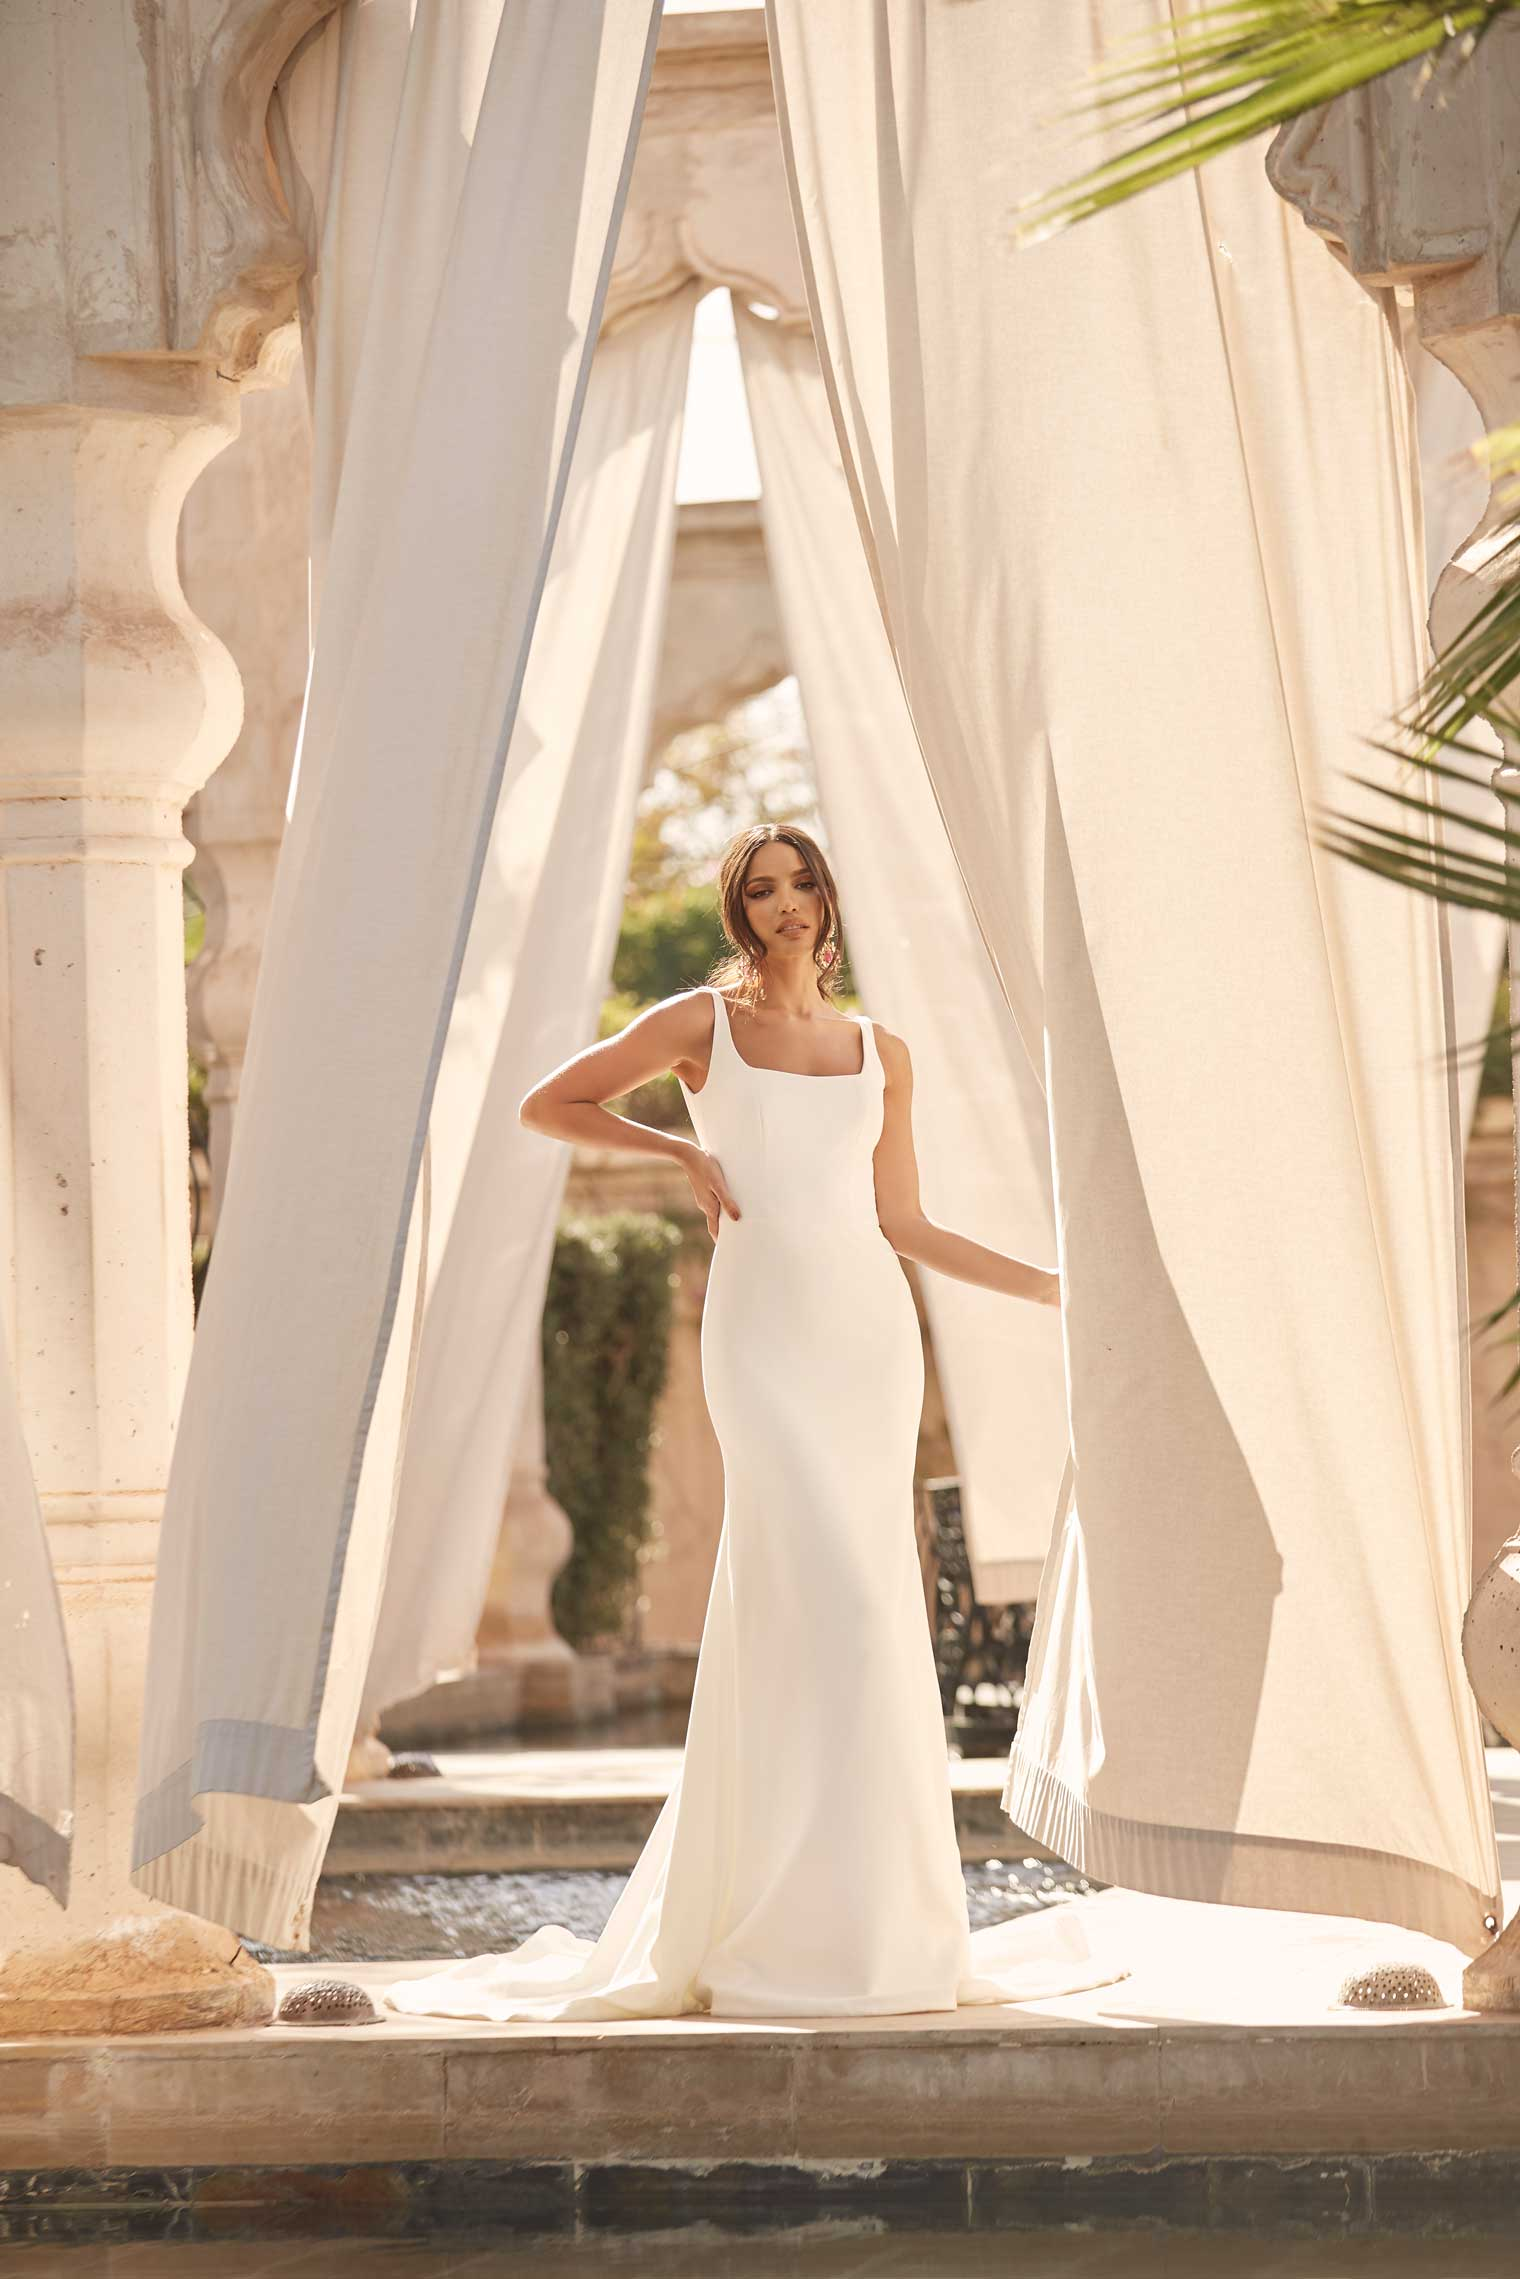 AIDEN-ML16113-FULL-LENGTH-FITTED-CREPE-GOWN-LOW-BACK-WITH-ZIP-CLOSURE-AND-DETACHABLE-JACKET-WEDDING-DRESS-MADI-LANE-BRIDAL5